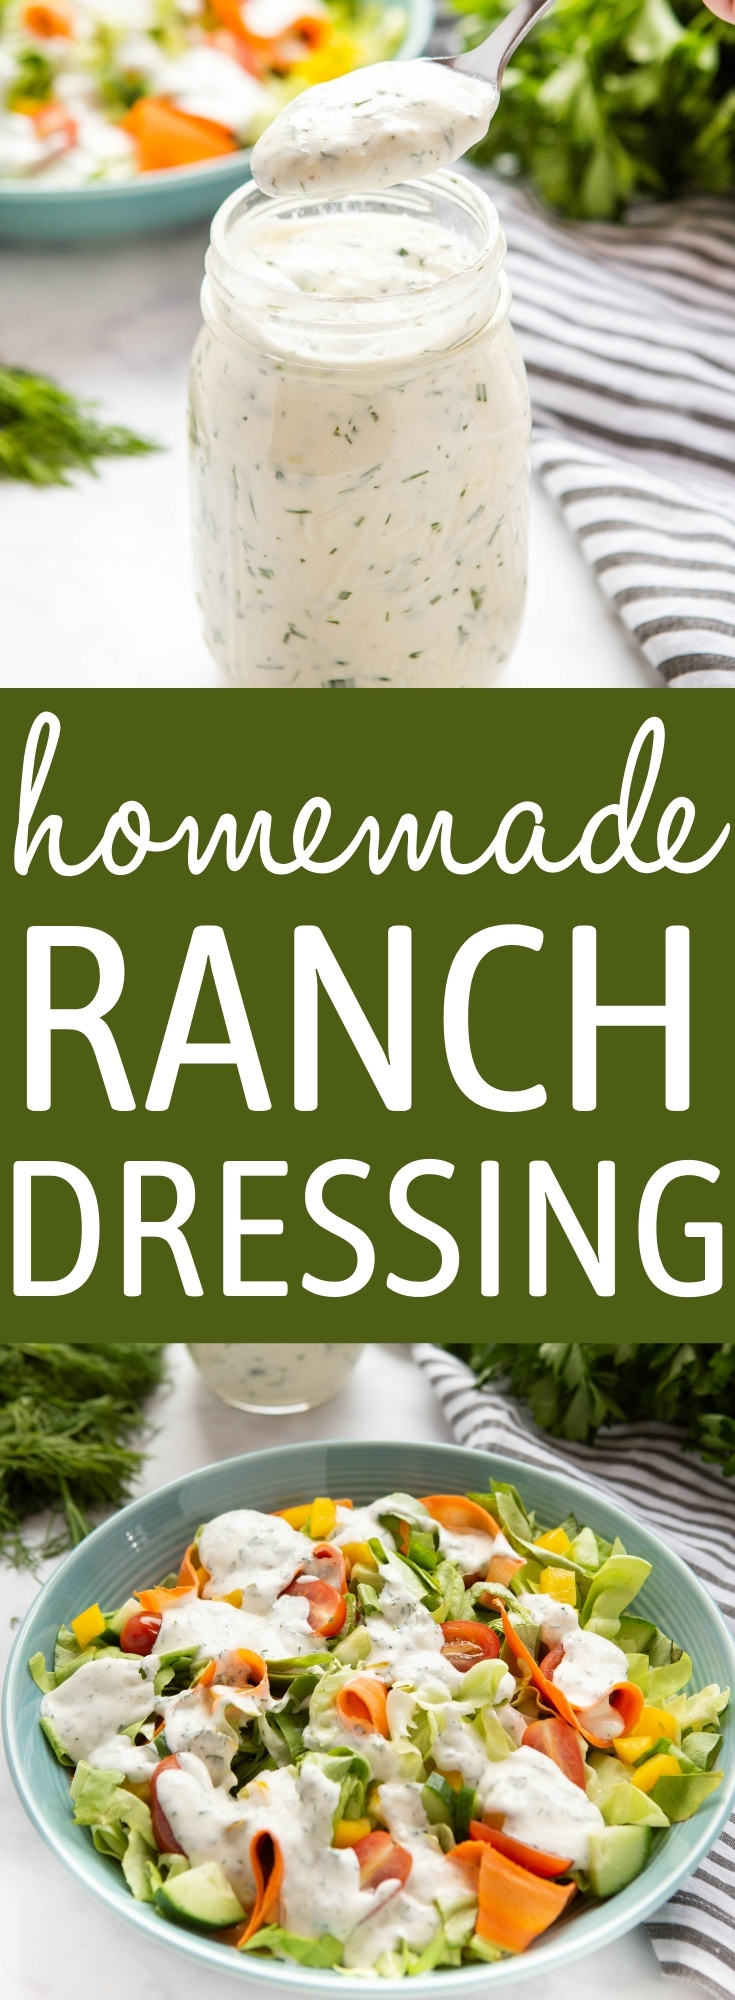 This Homemade Ranch Dressing is ultra creamy and packed with delicious herbs! It makes the perfect addition to any garden salad and it's so easy to make! Recipe from thebusybaker.ca! #ranchdressing #ranchdip #homemaderanch #herbs #garden #creamy #salad #saladdressing via @busybakerblog